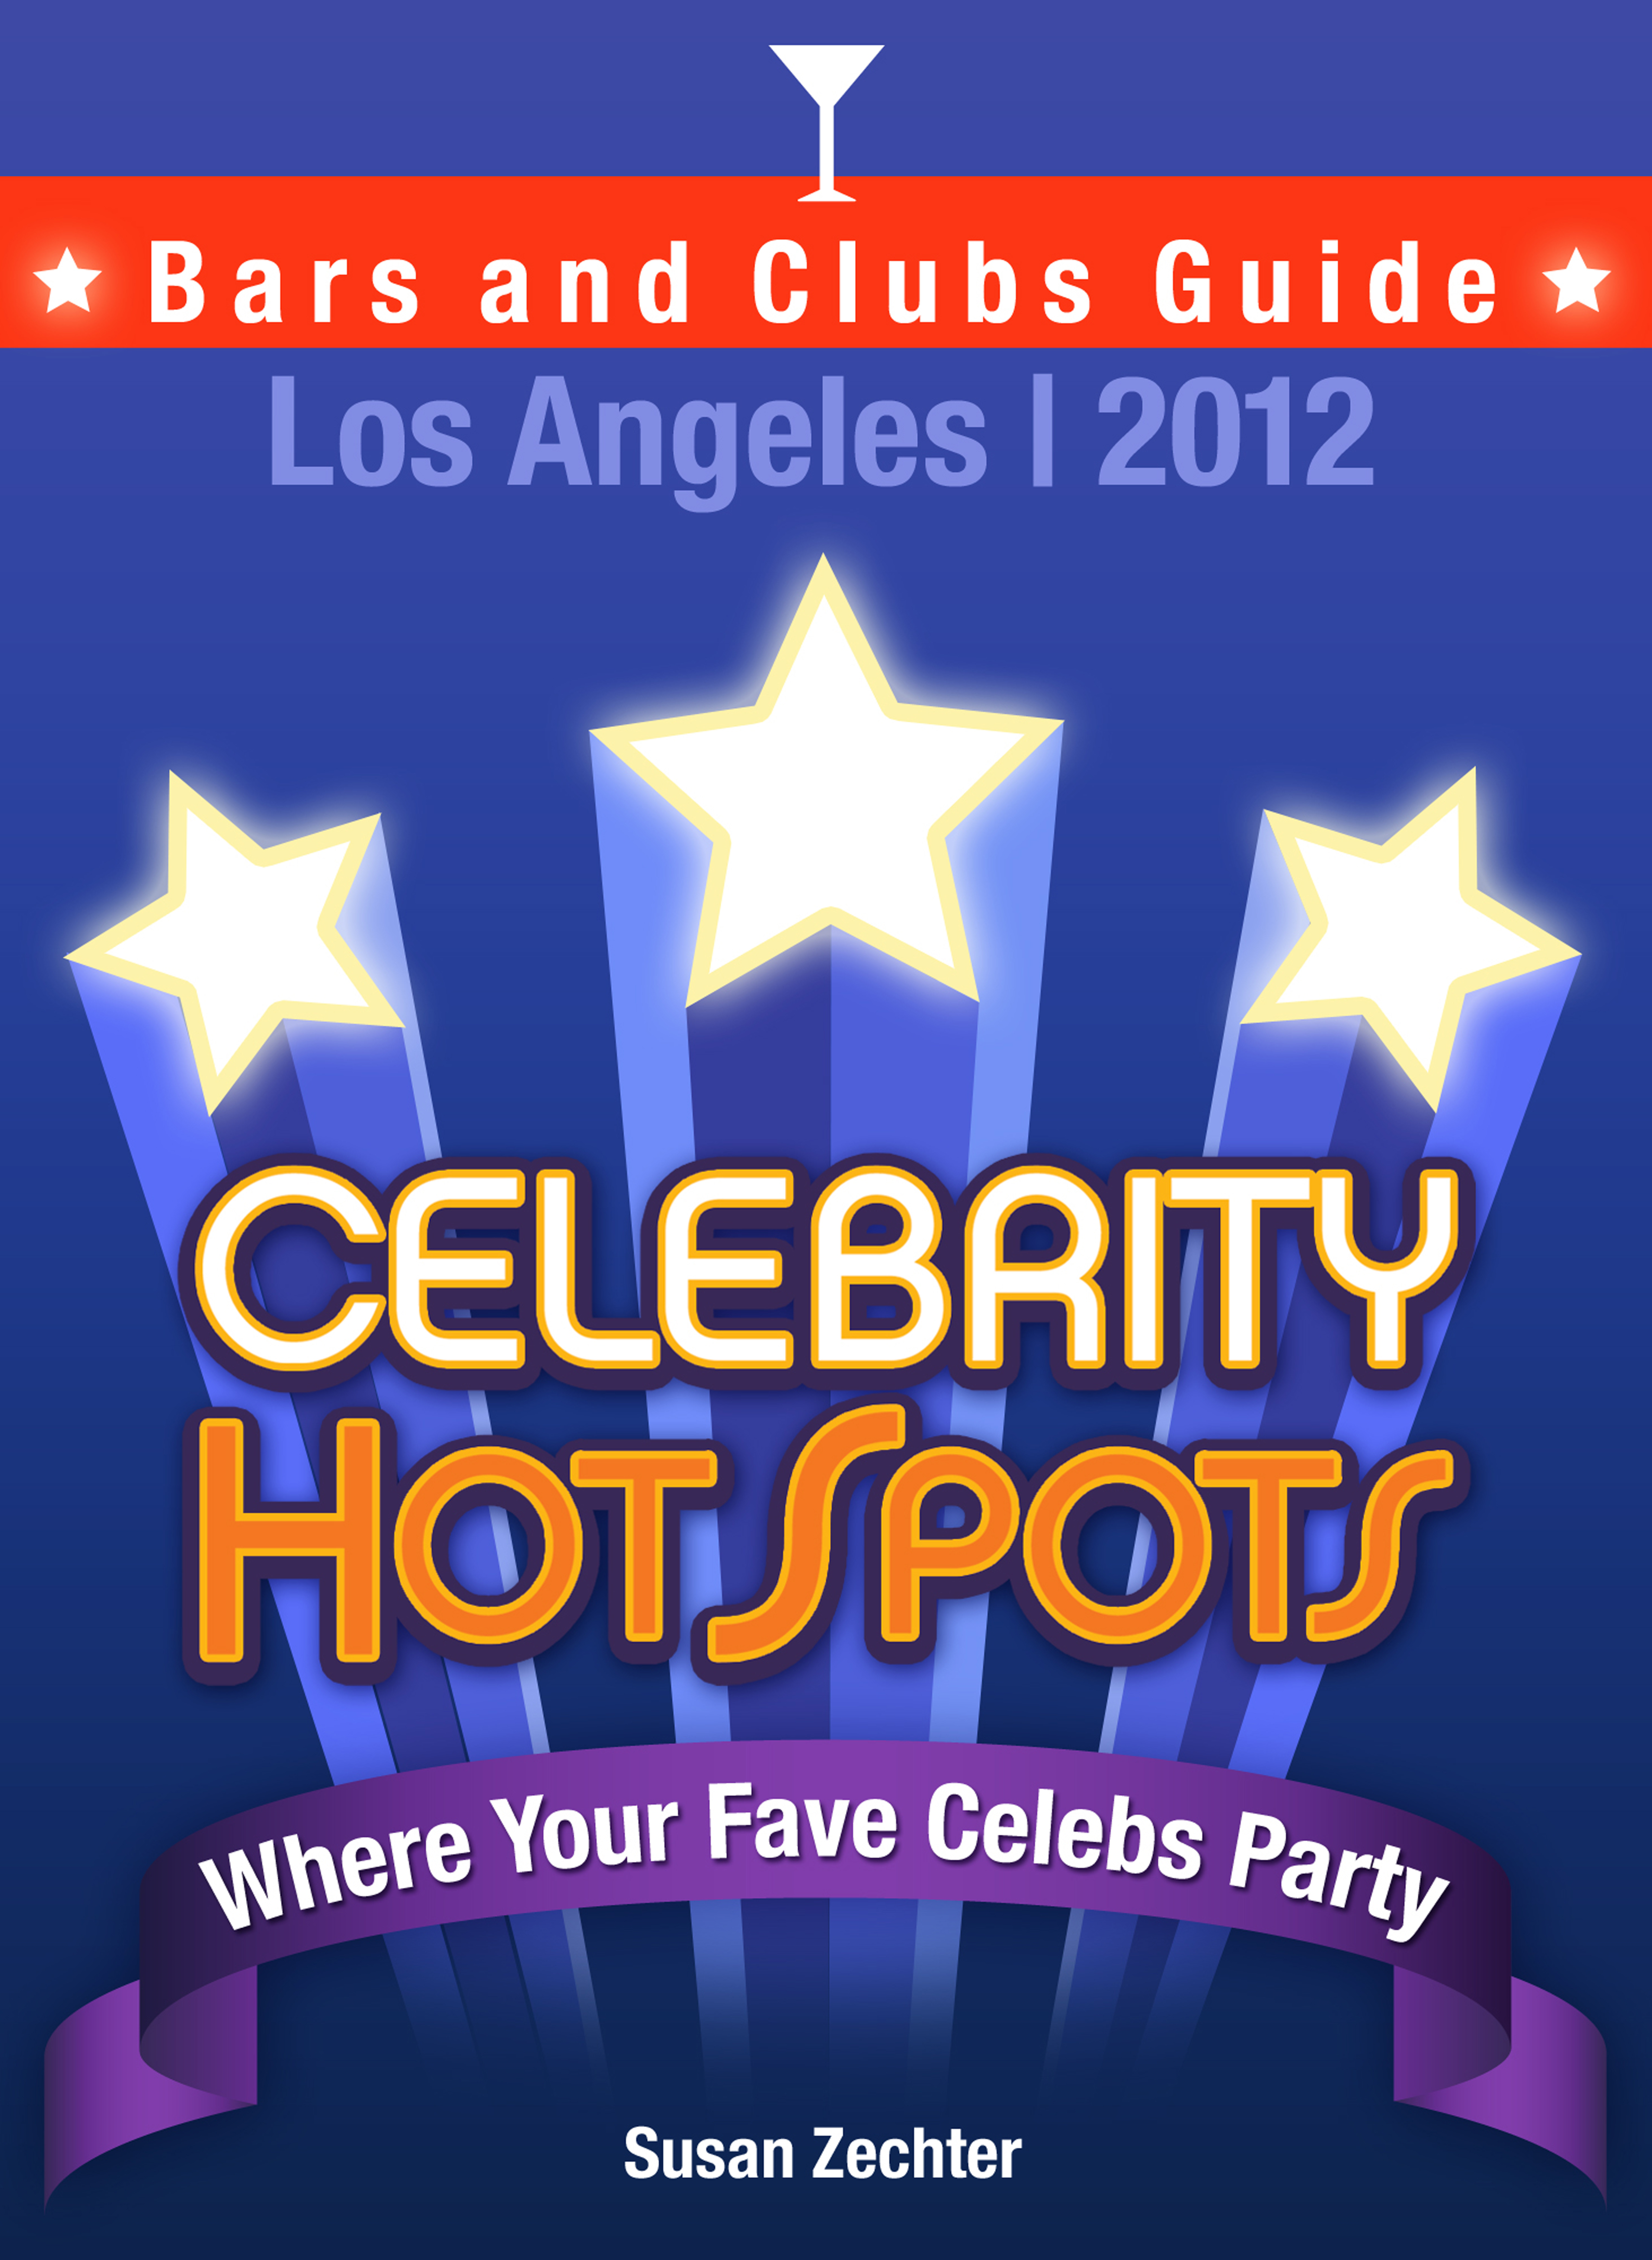 2012 Celebrity HotSpots Los Angeles Bars and Clubs Guide: Where Your Fave Celebs Dine